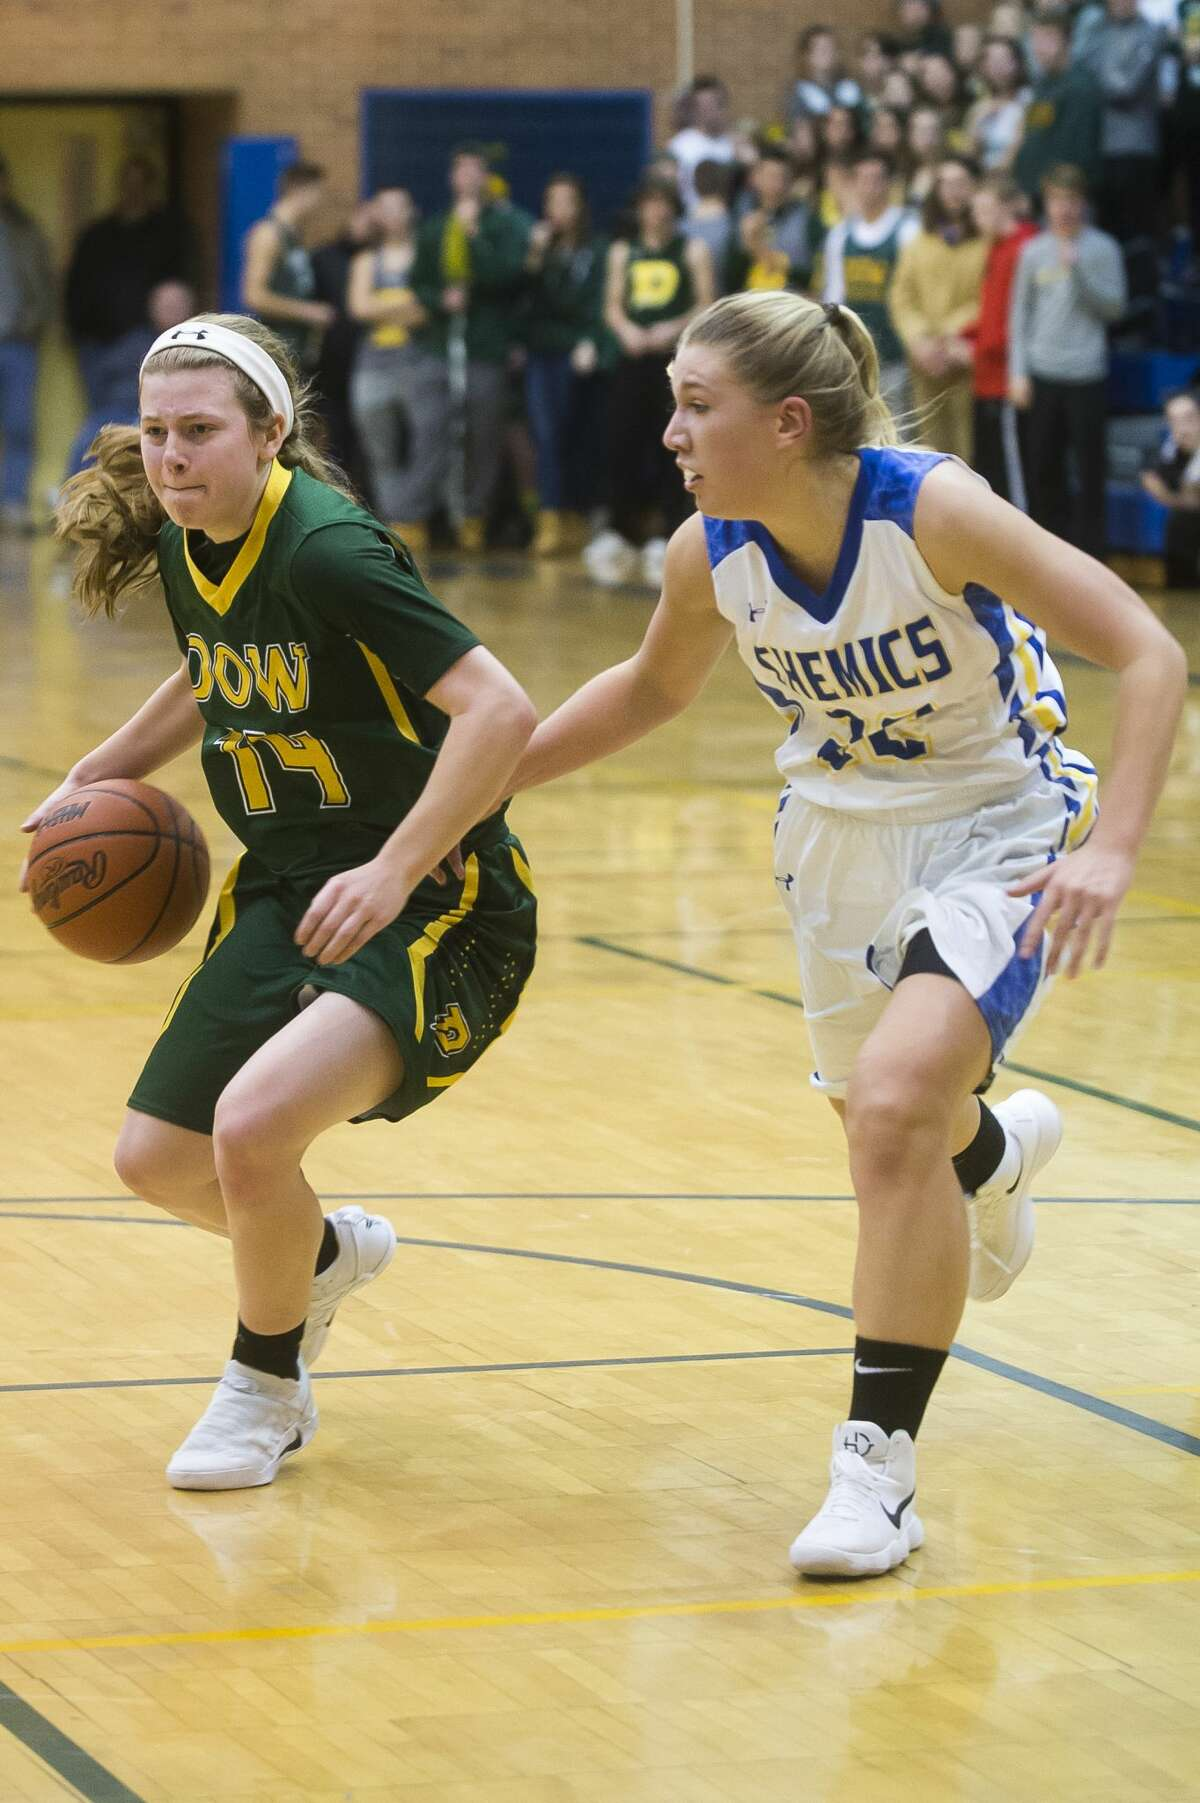 Dow junior Molly Davis dribbles down the court during the Chargers' game against Midland on Tuesday, Dec. 19, 2017 at Midland High School. (Katy Kildee/kkildee@mdn.net)